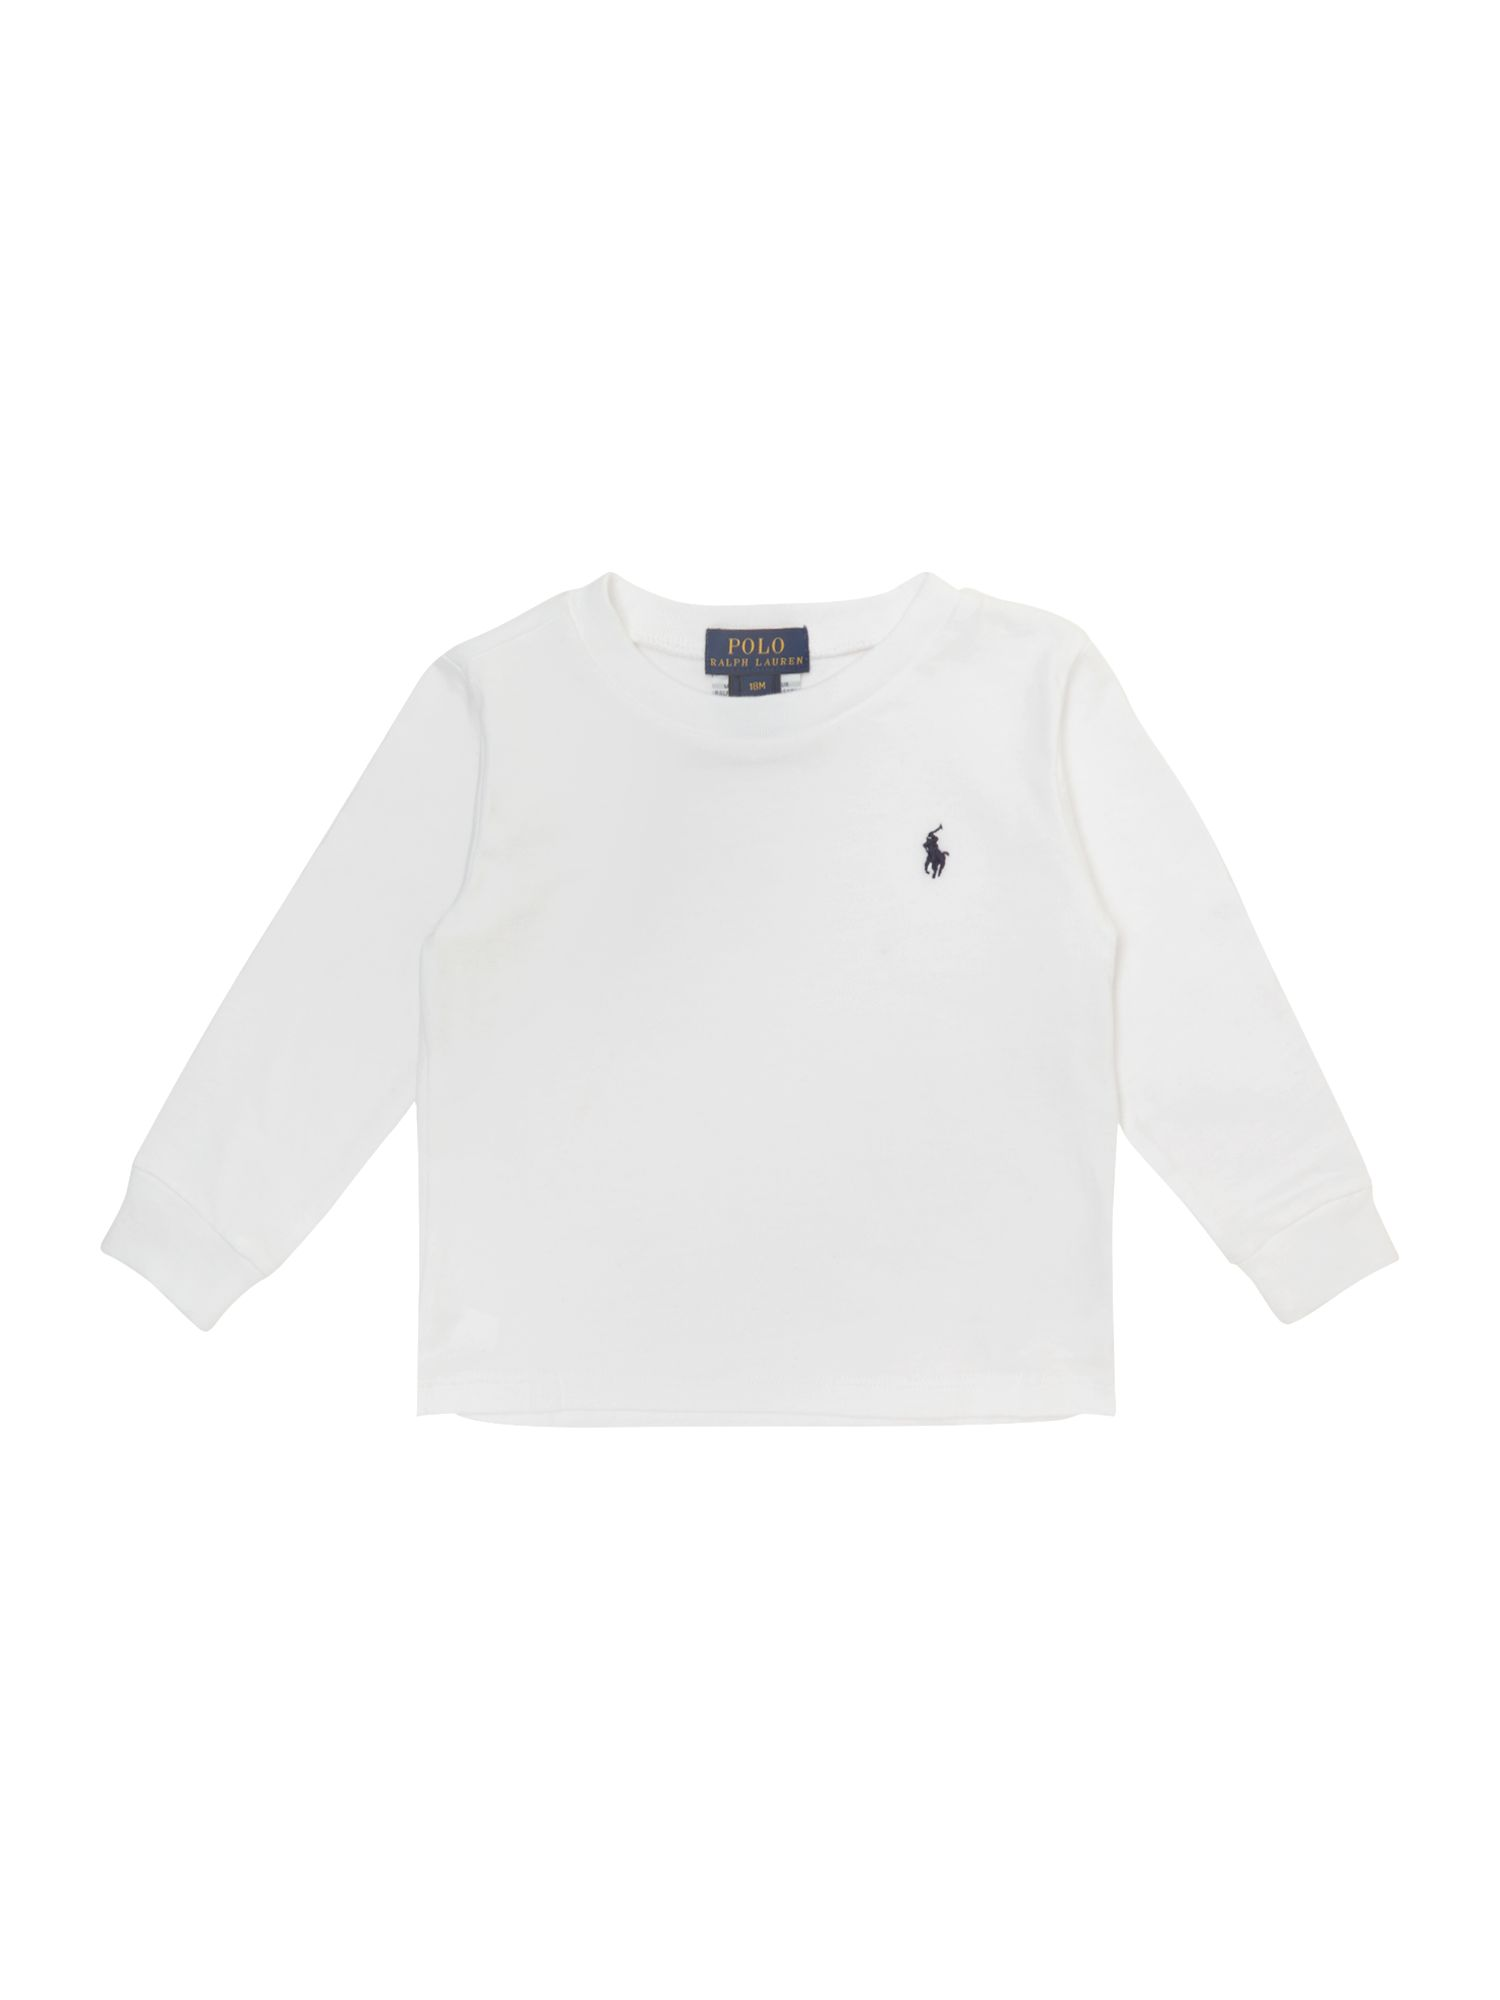 Boys classic jersey t-shirt with small pony